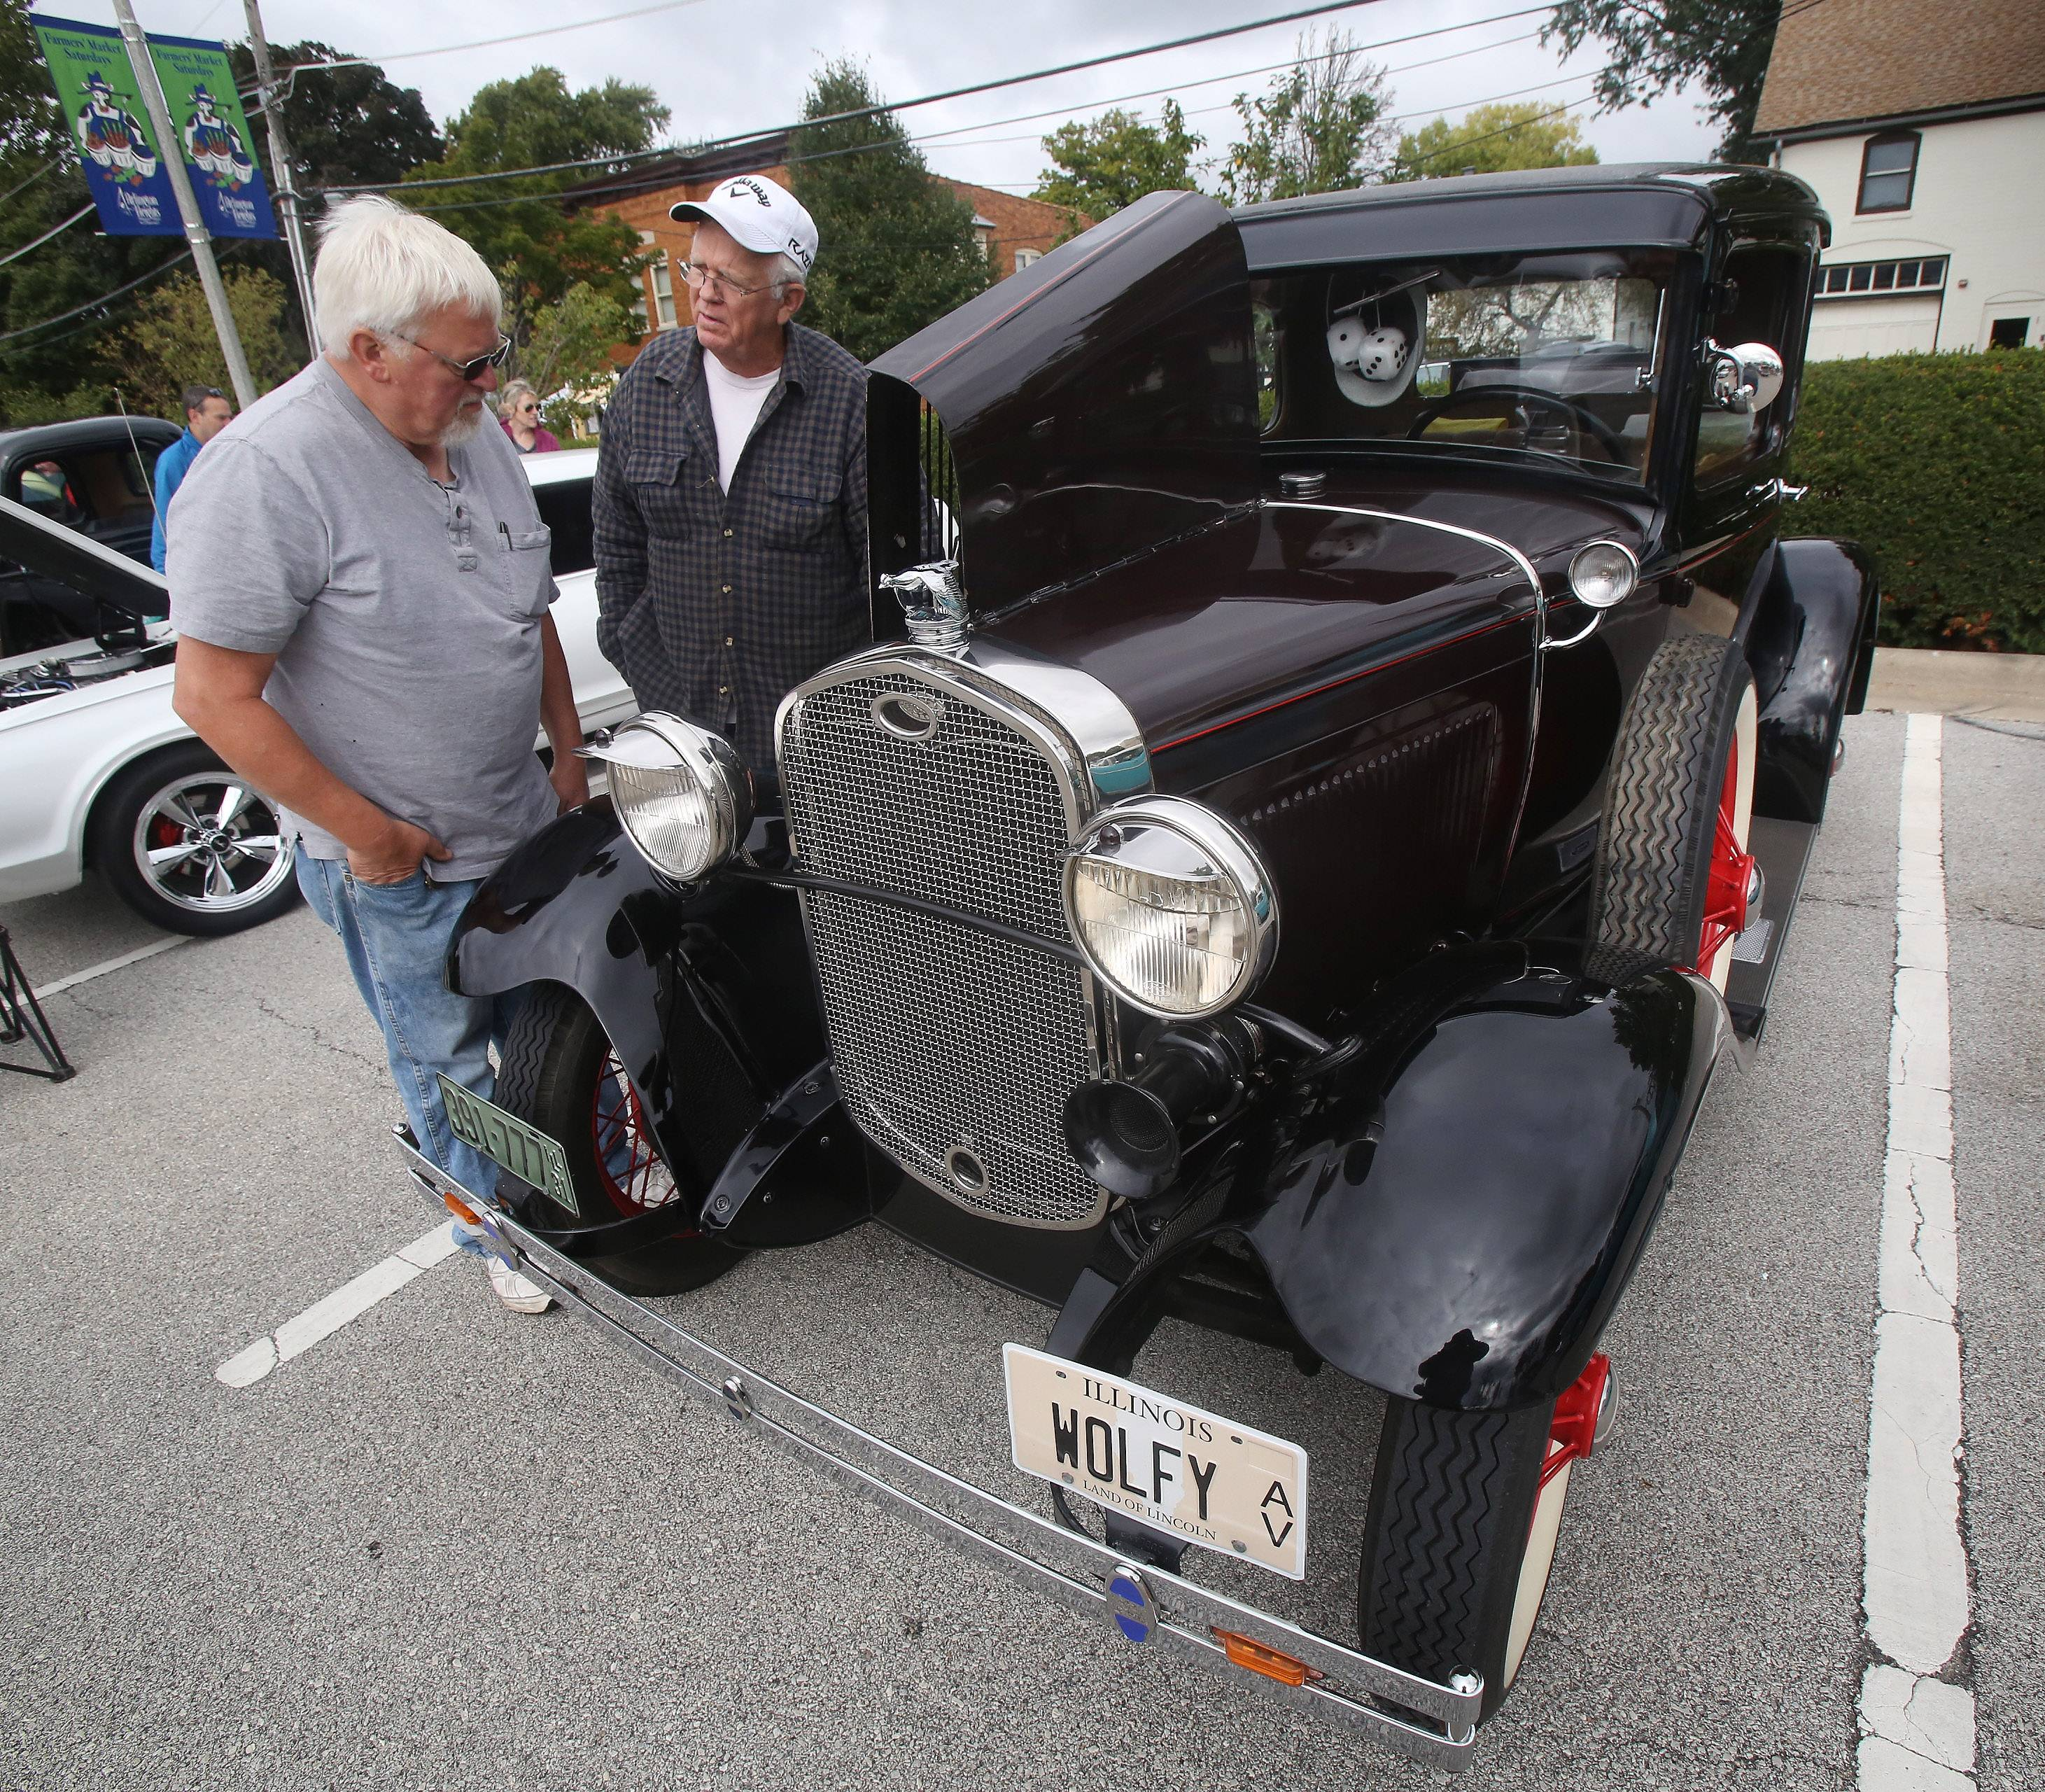 Chuck Parcell of Mount Prospect, left, and John Murphy of Prospect Heights talk about the 1931 Model A Ford Coupe on display Sunday during the 3rd annual Motoring at the Museum Car Show at the Arlington Heights Historical Museum. The show featured over 100 antique, muscle, foreign and customized cars.